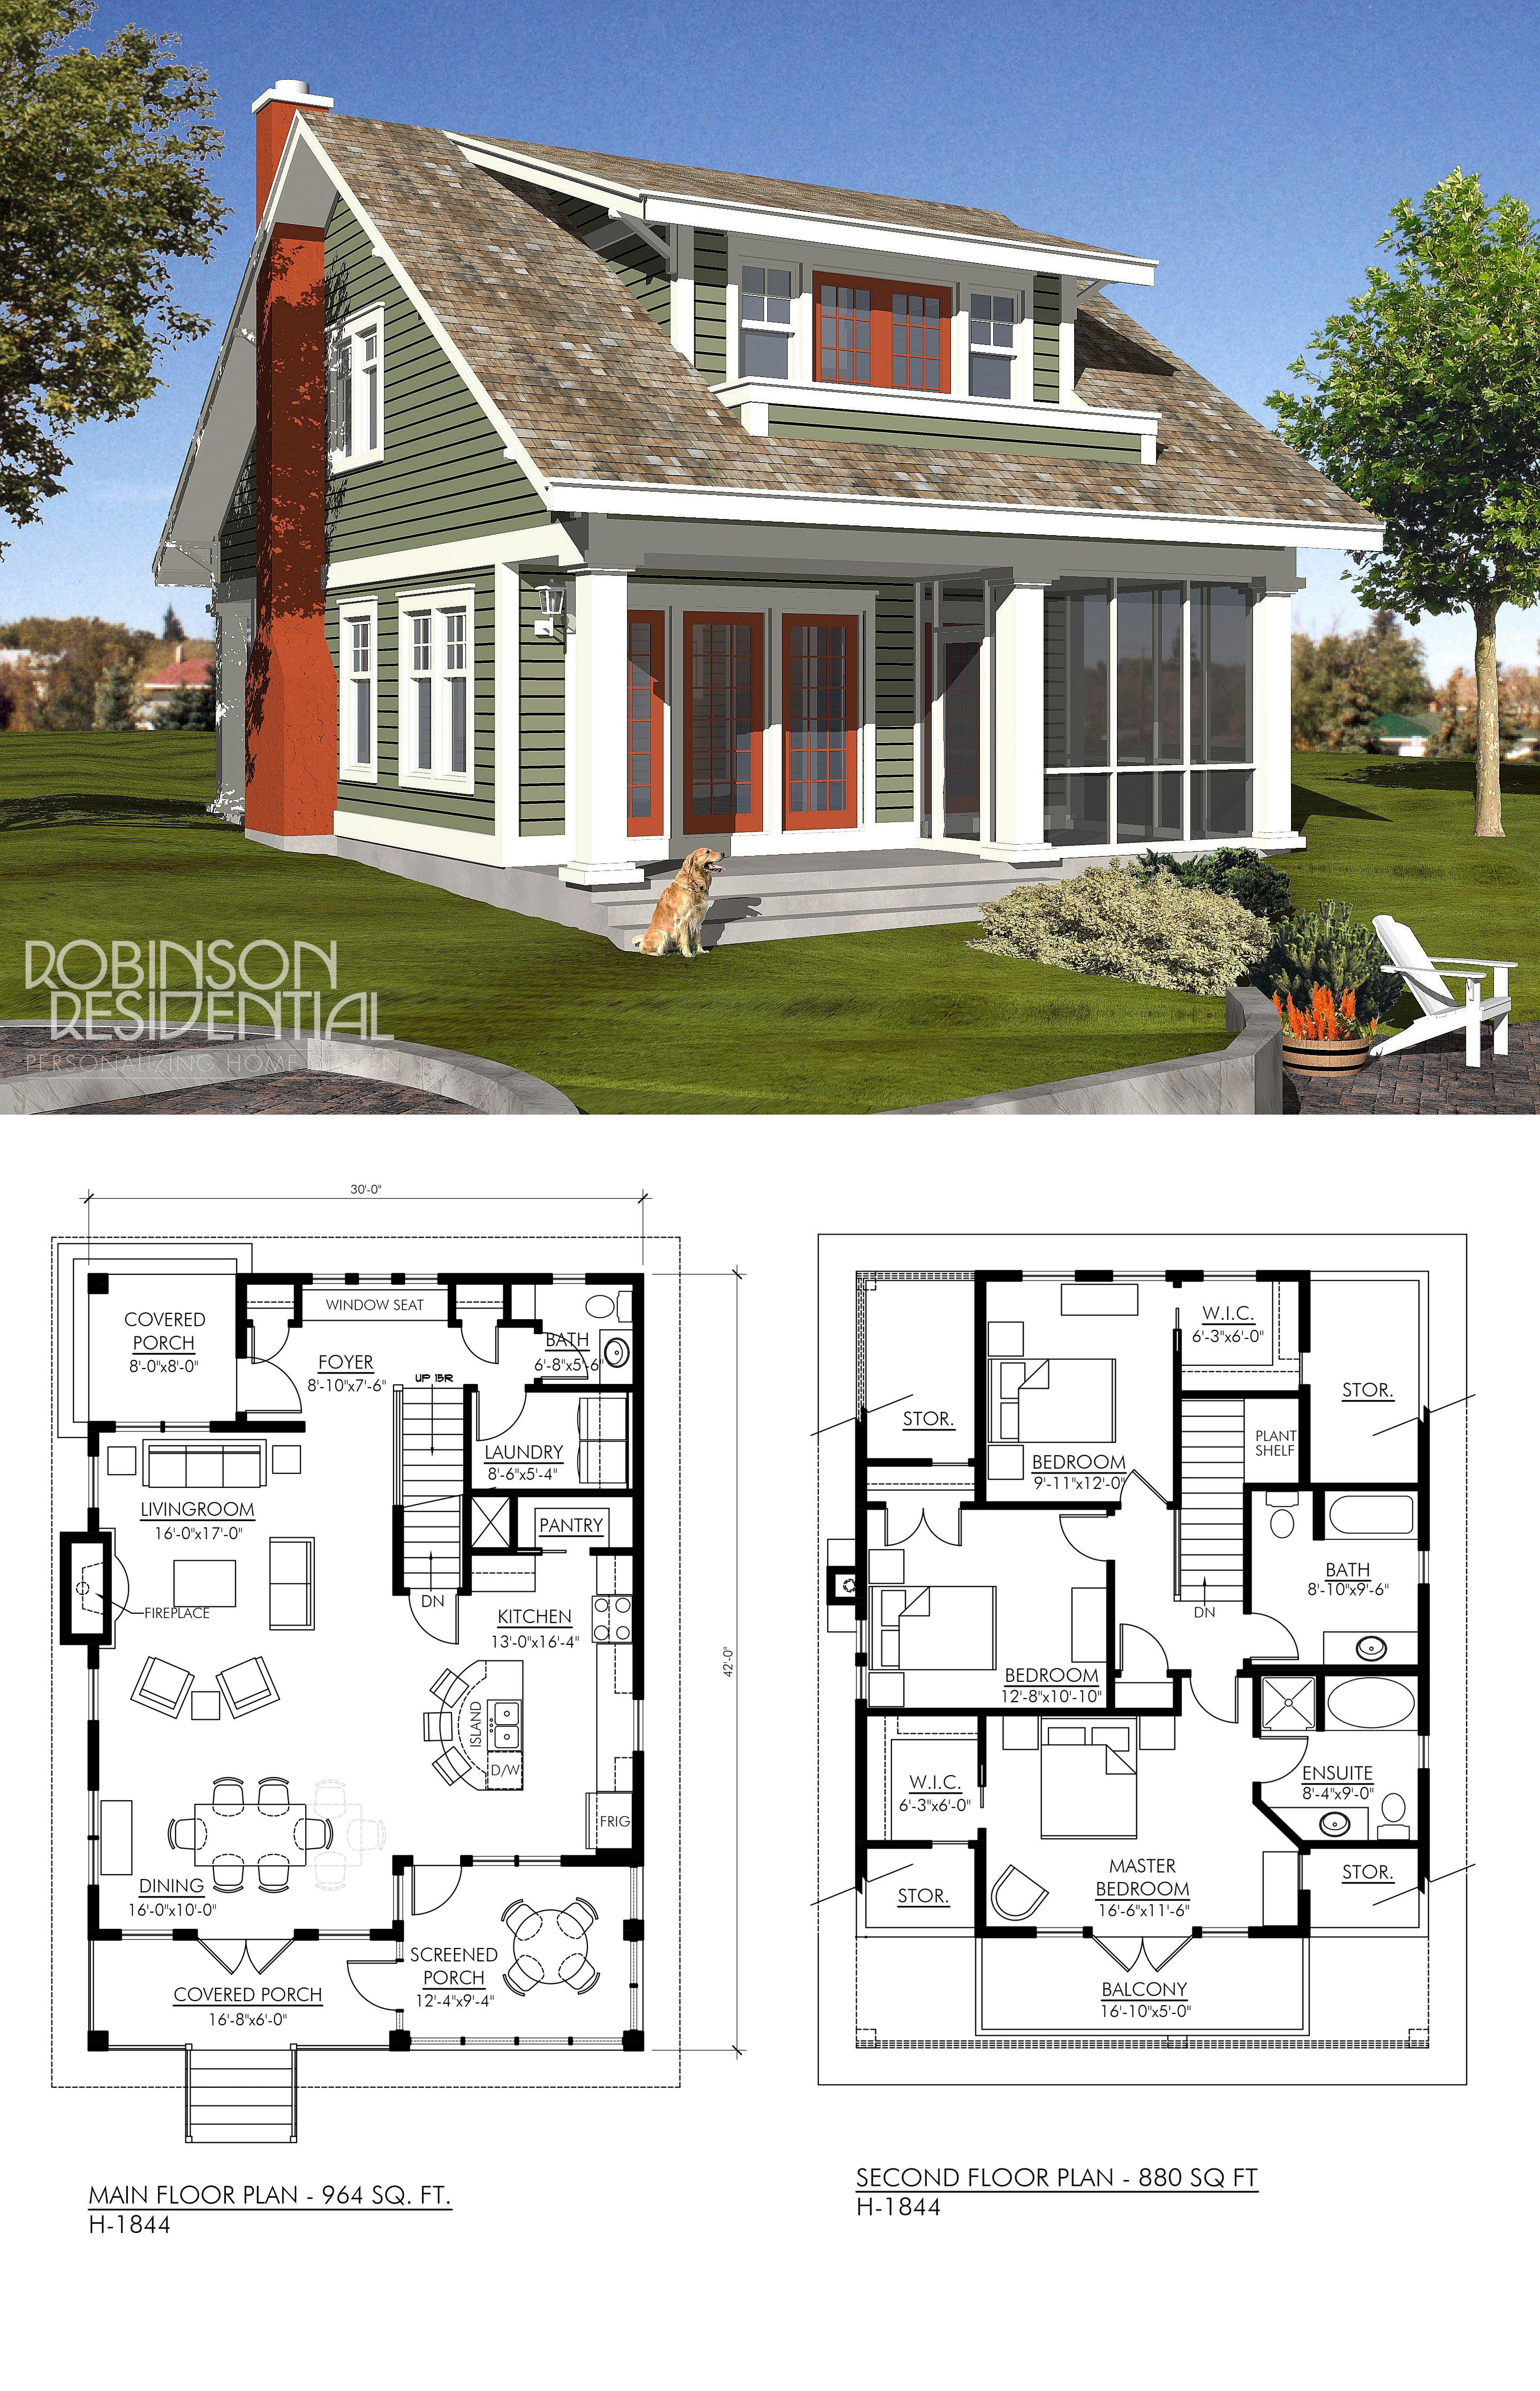 House Plans for Cabins and Small Houses Inspirational Craftsman H 1851